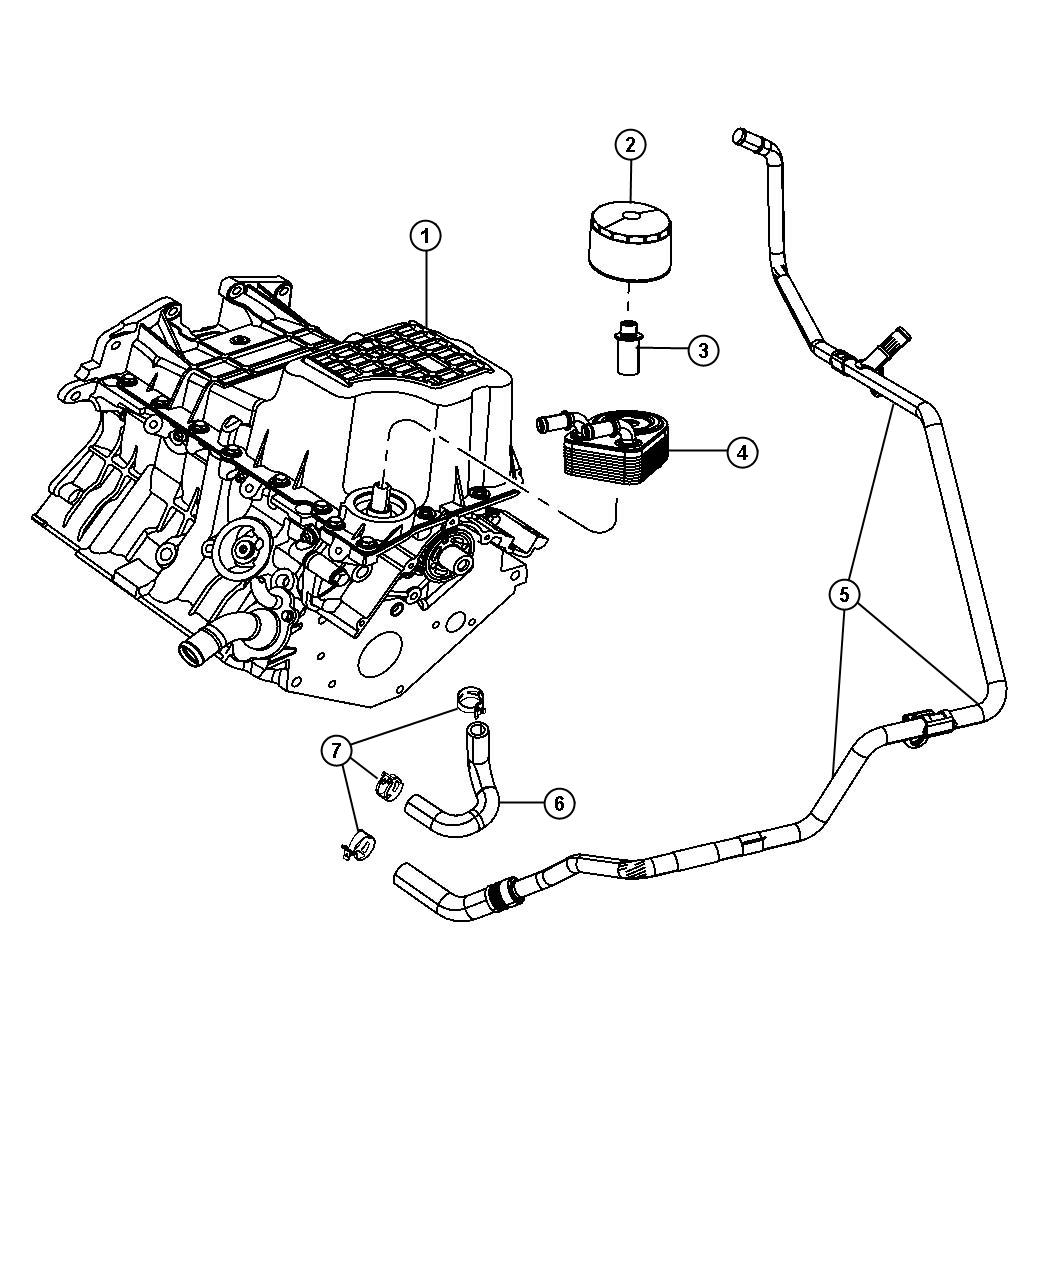 2001 Dodge Intrepid Oil Sending Unit Location on 2007 pt cruiser fuse box diagram